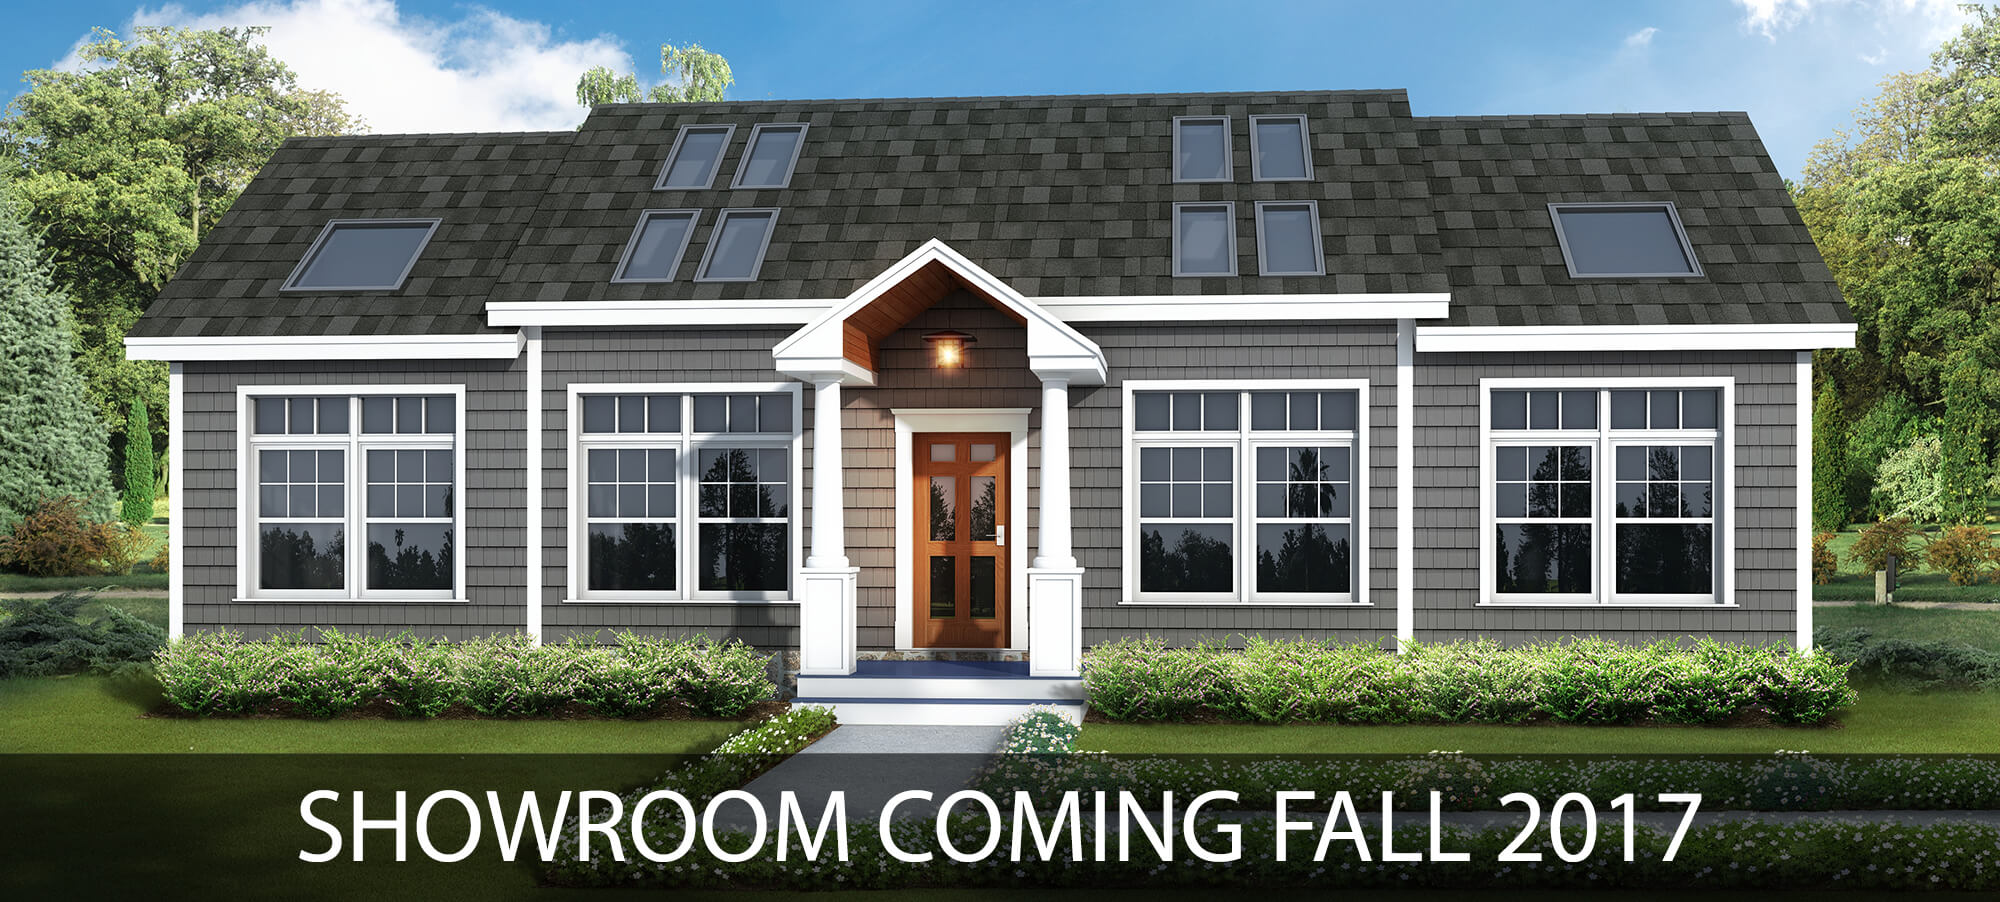 Southern Maine Remodeling Showroom Coming Soon